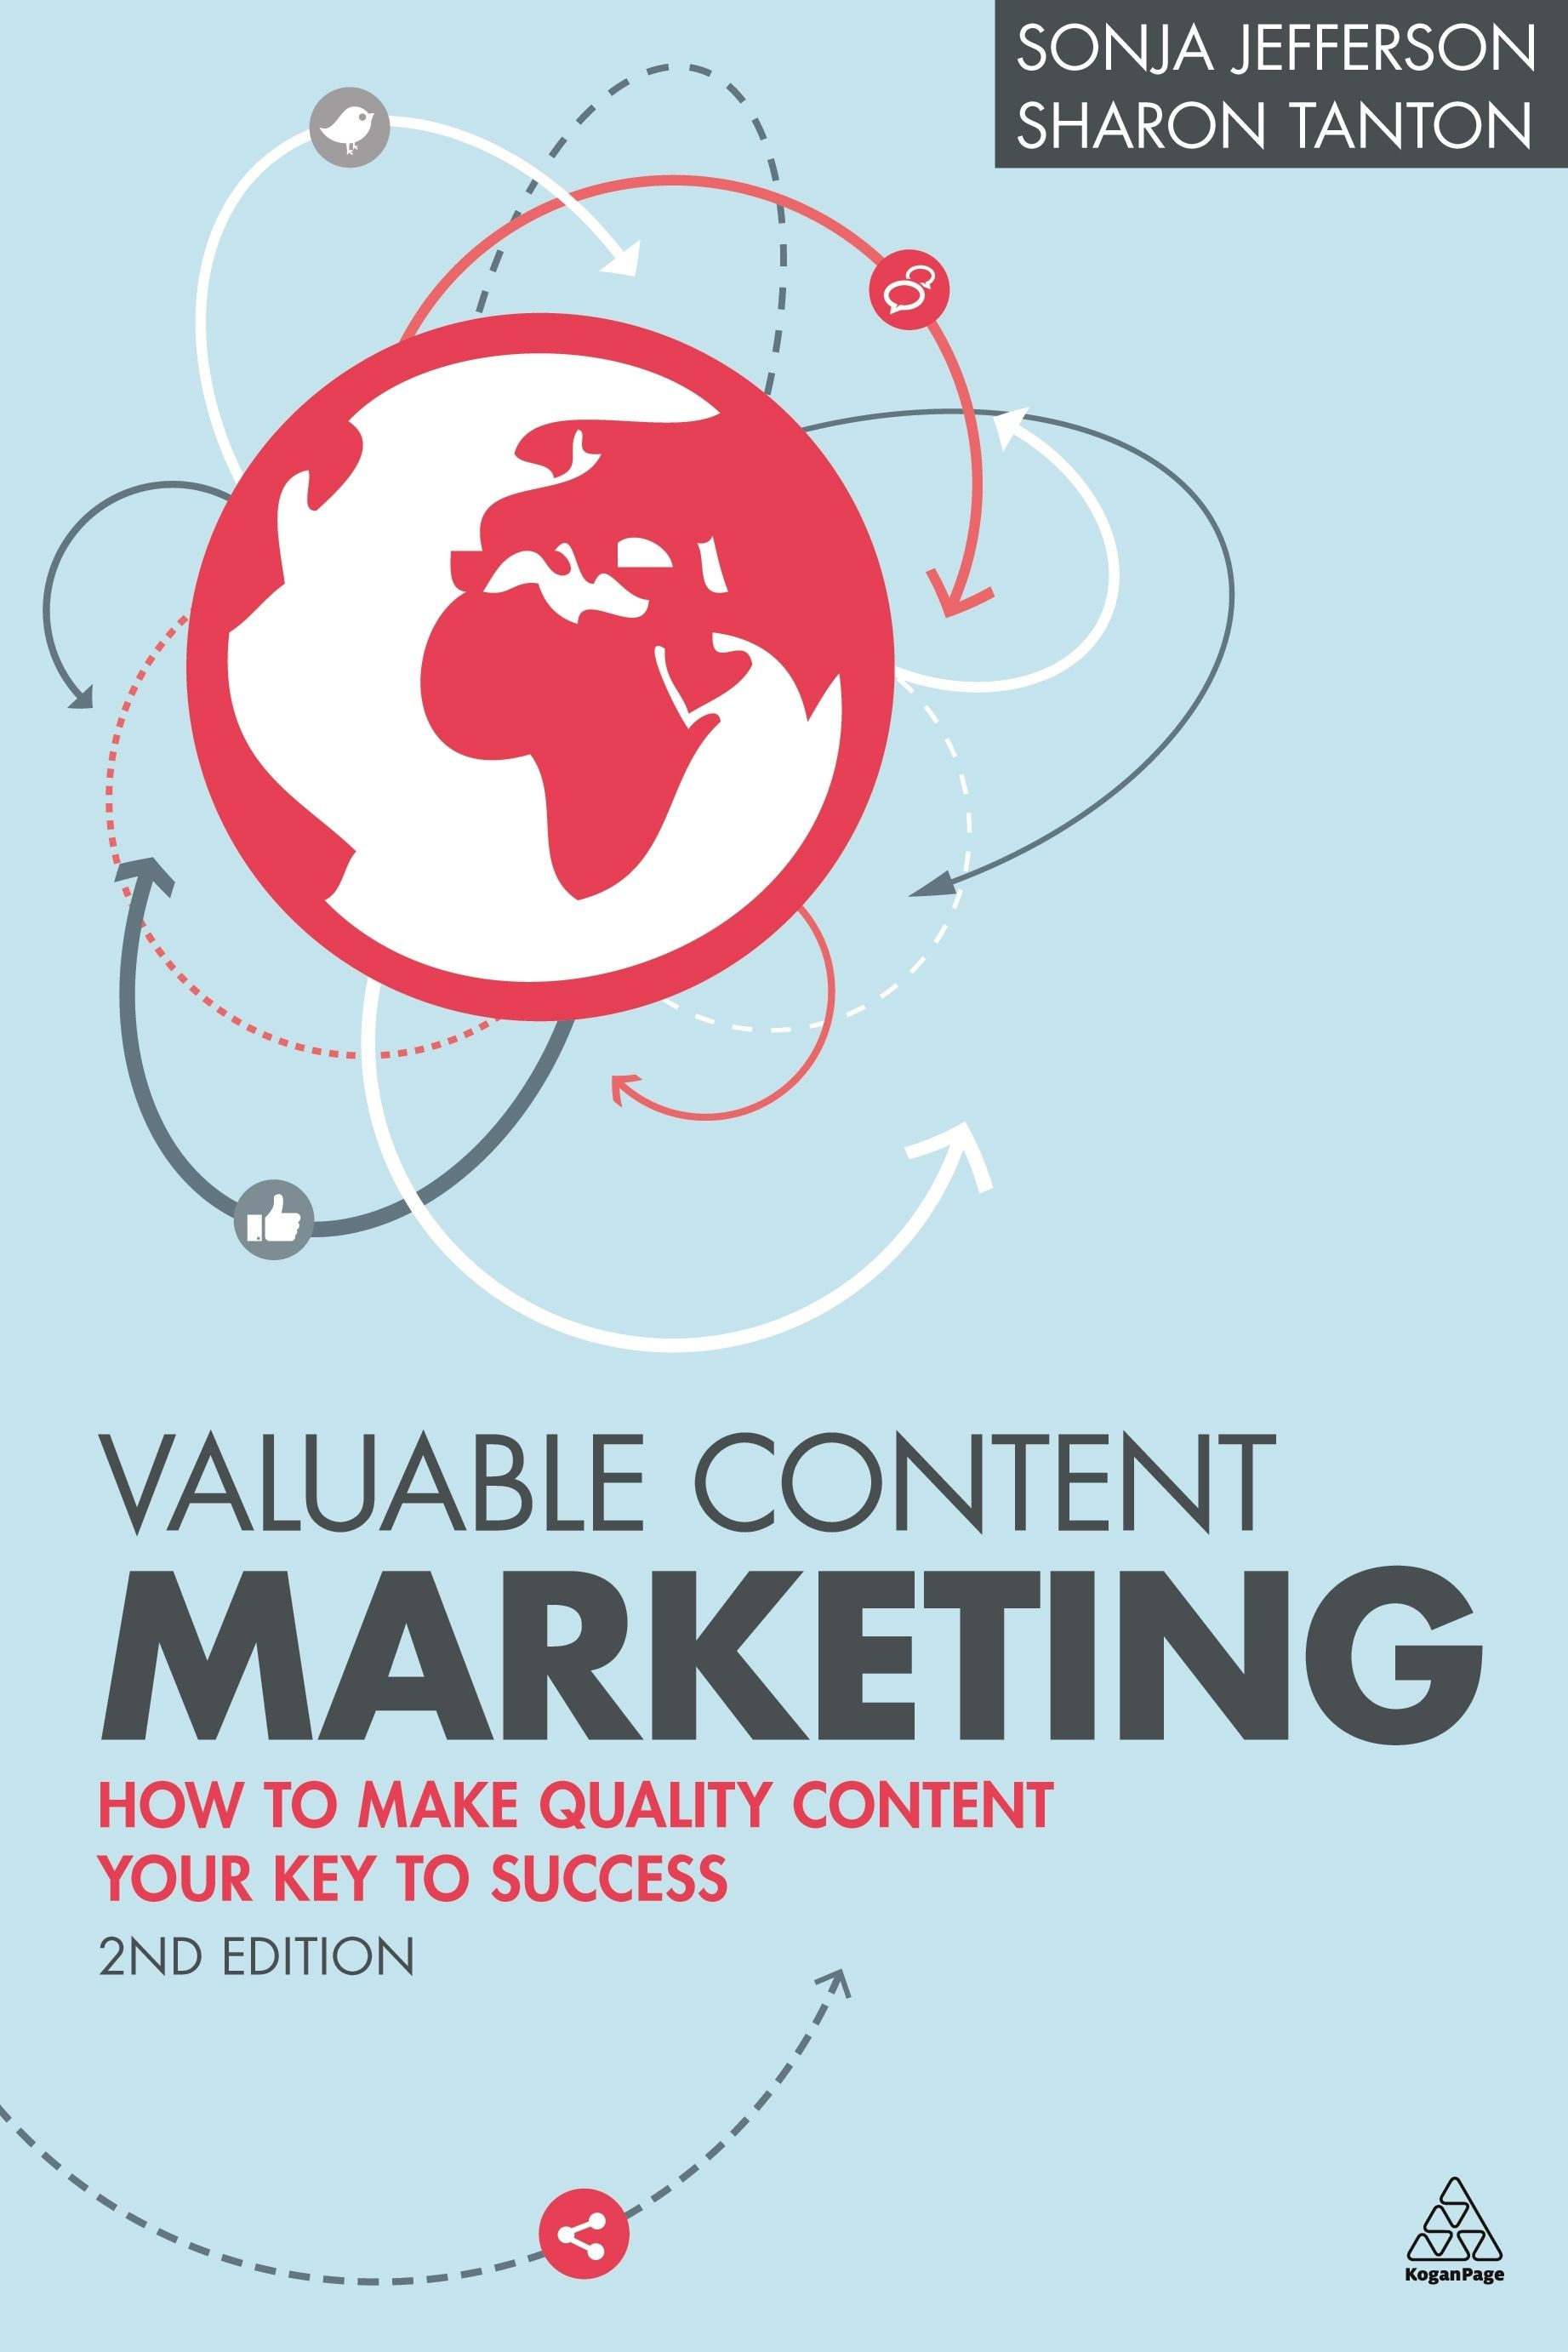 Essential Valuable Content Marketing By Sonja Jefferson And Sharon Tanton Contentmarketing Marketing Content Marketing Content Strategy Marketing Approach